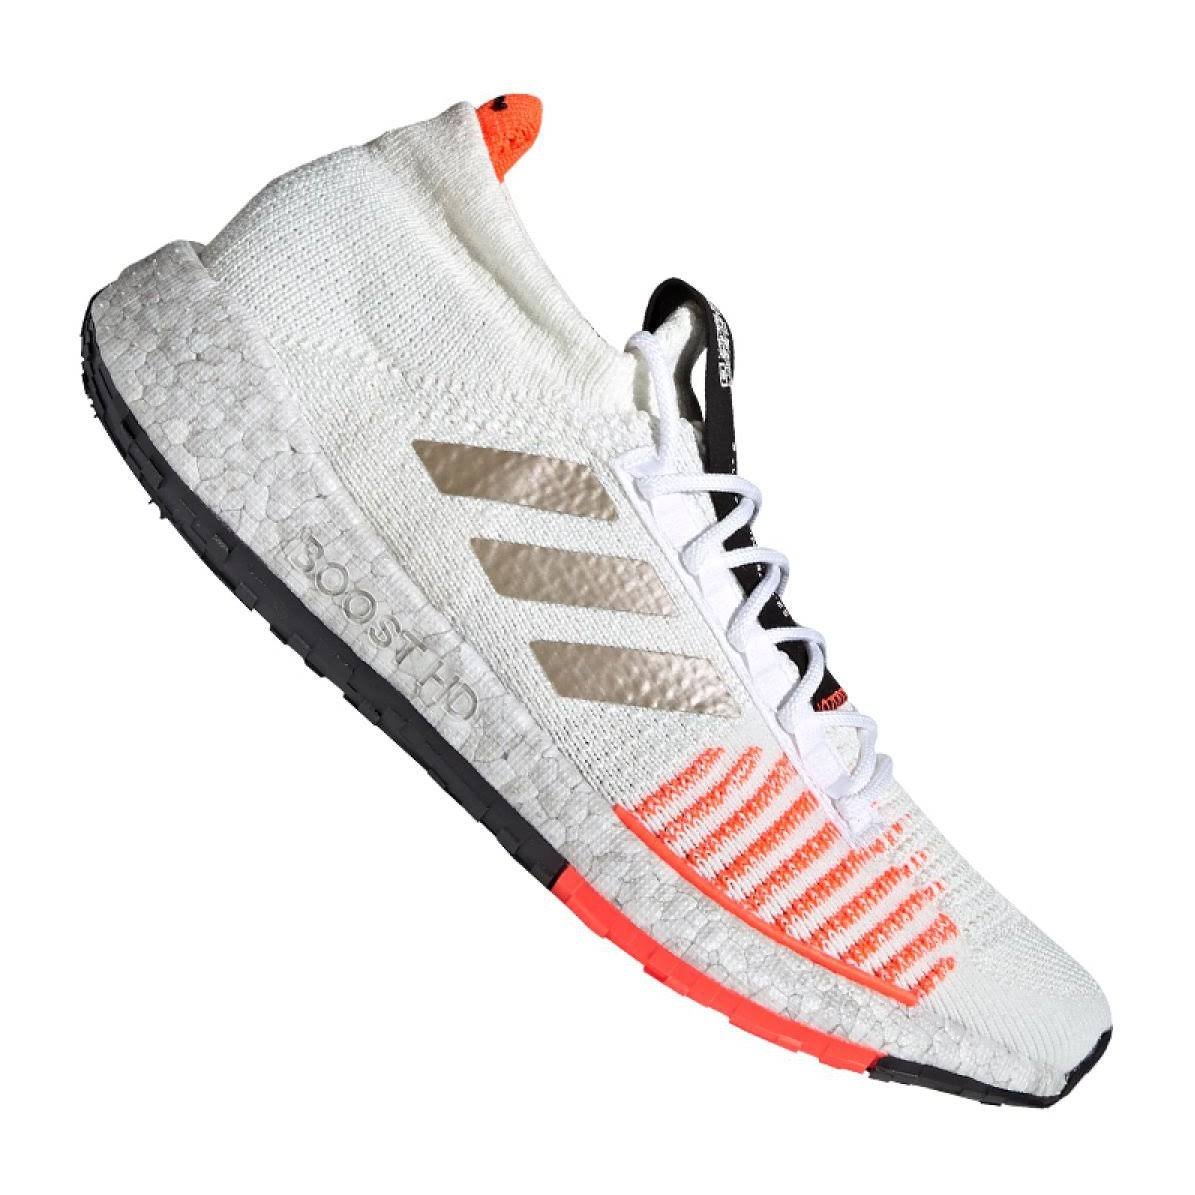 Adidas PulseBOOST Hd M EE9564 shoes white